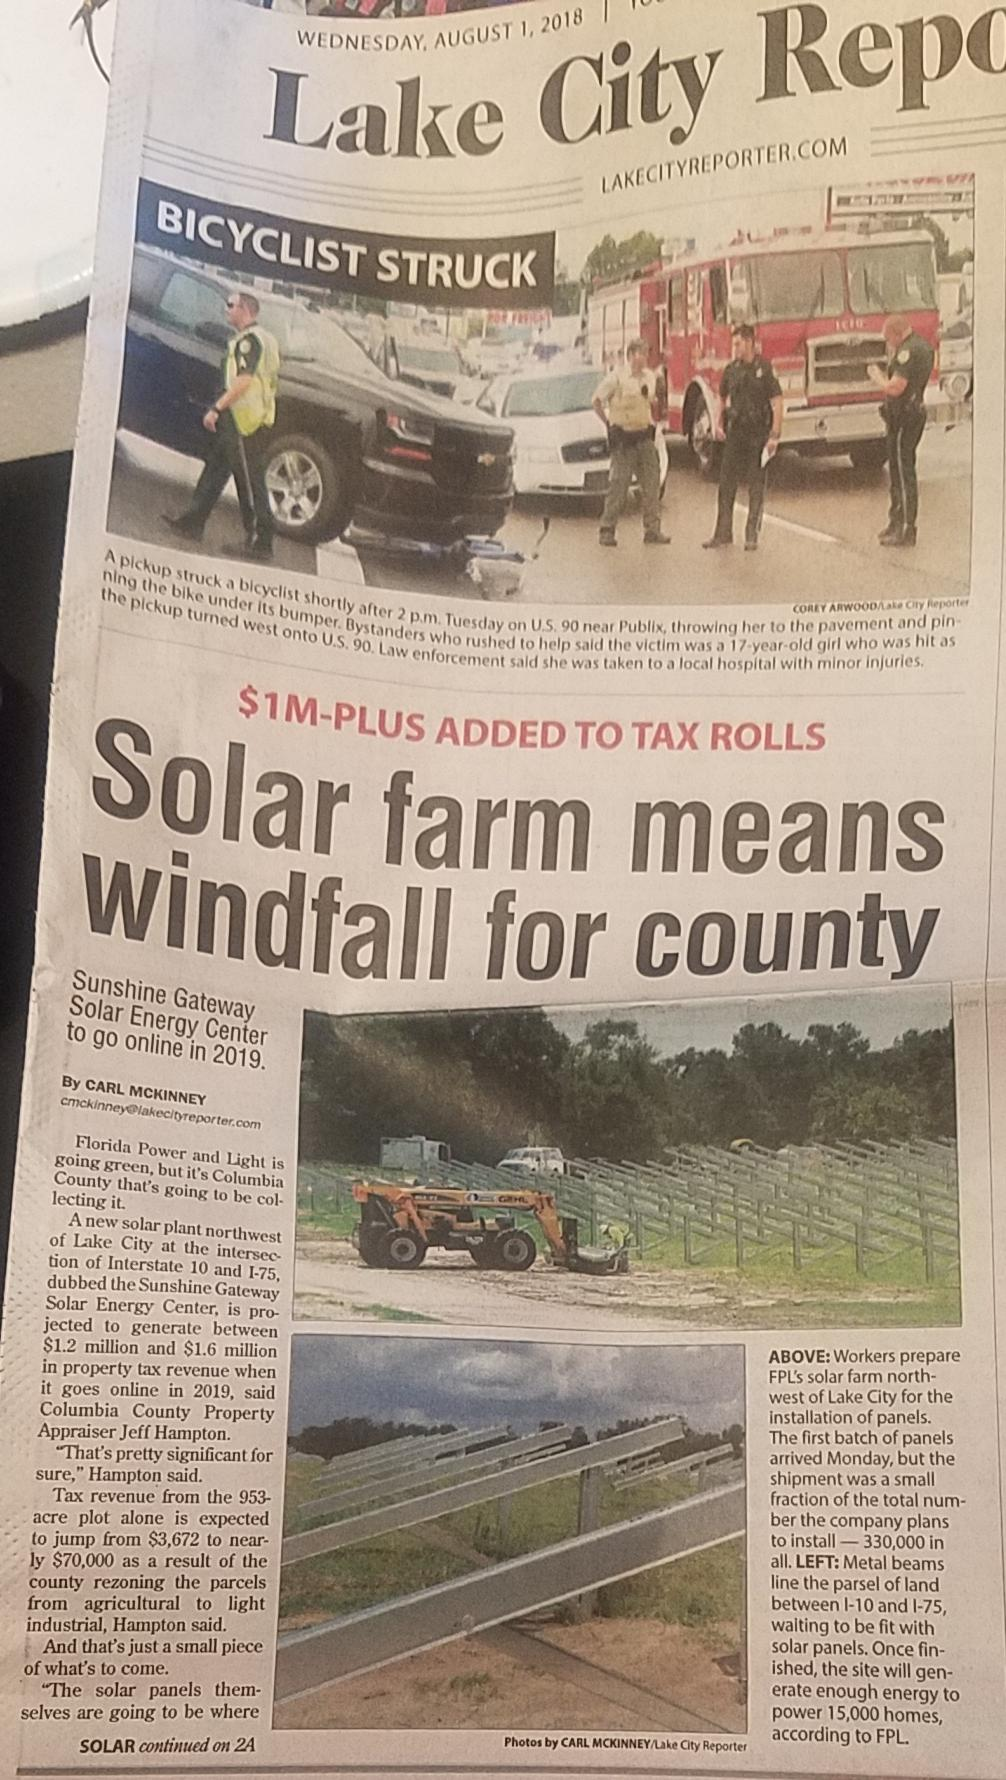 1006x1780 Continued, Newspaper, in Solar Windfall for Columbia County, by Lake City Reporter, for WWALS.net, 7 August 2018